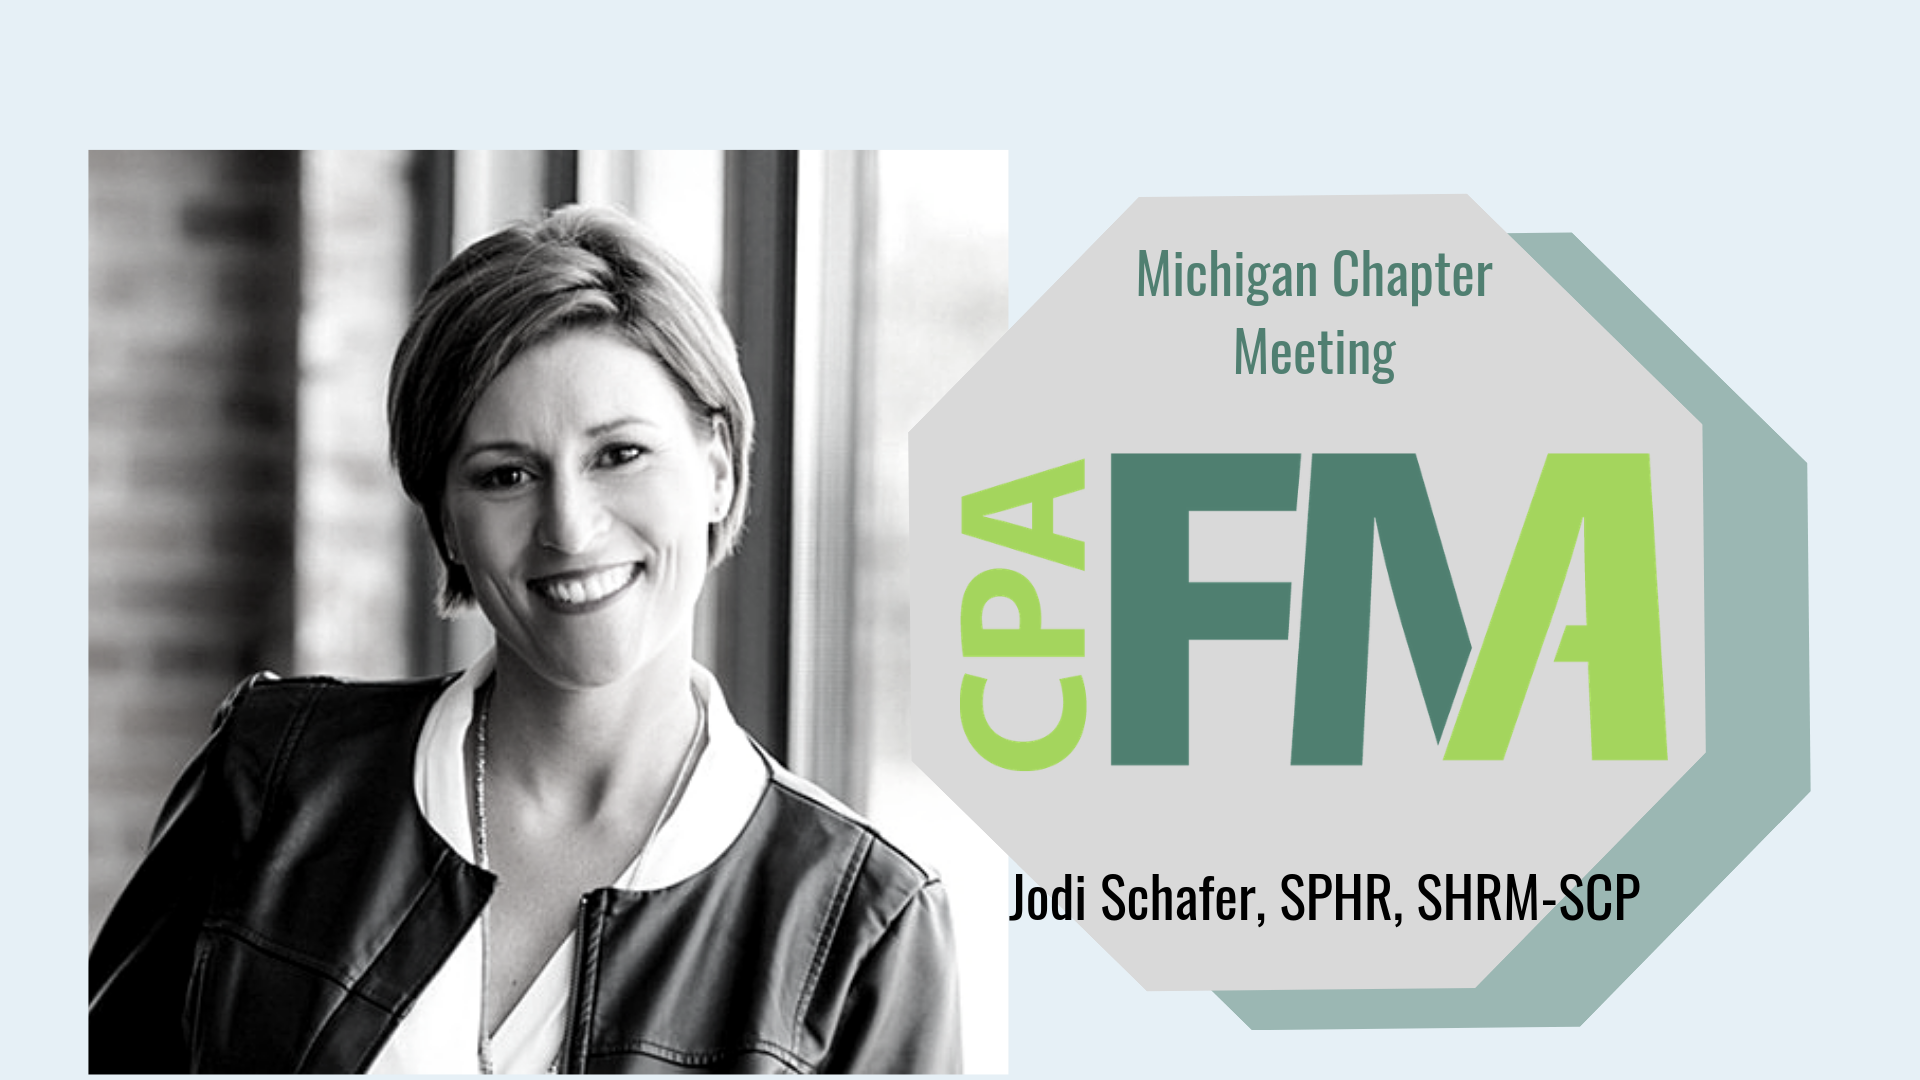 Michigan Chapter Meeting: HR Best Practices